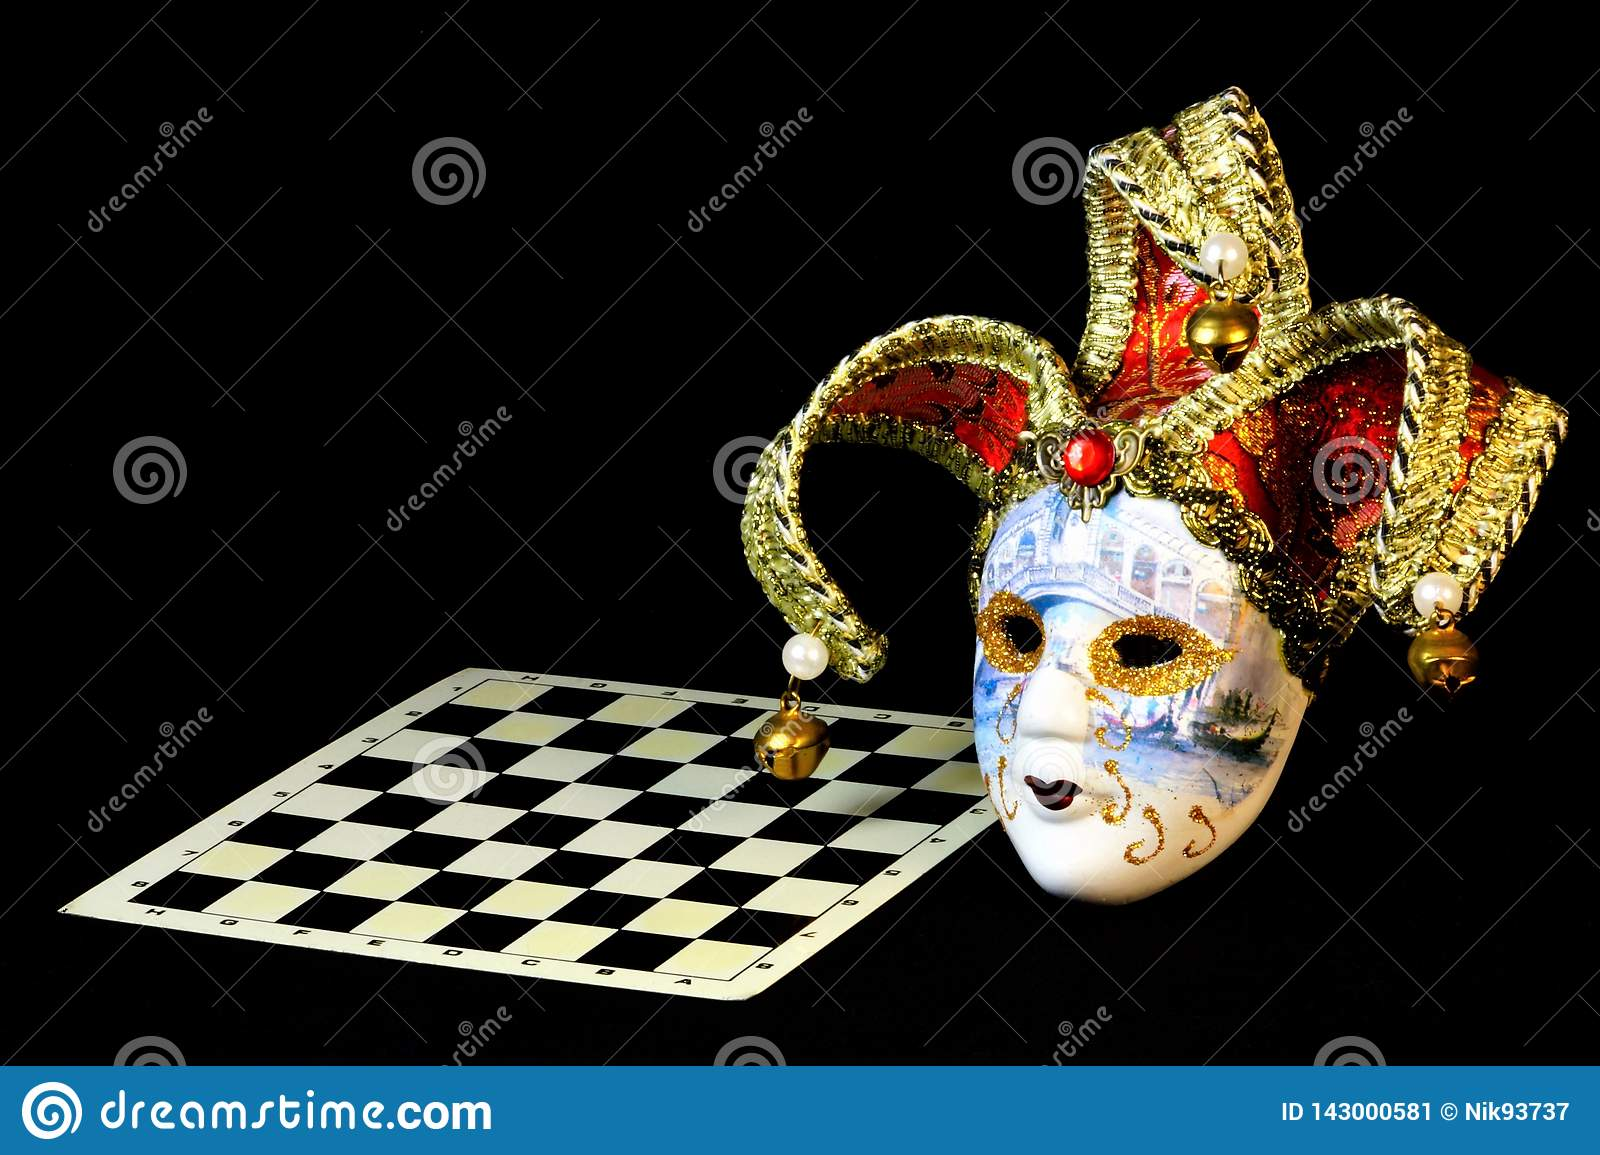 Theatrical carnival mask and chess Board. The mask is a symbol of transformation, change and mystery, real to desired. The aspect